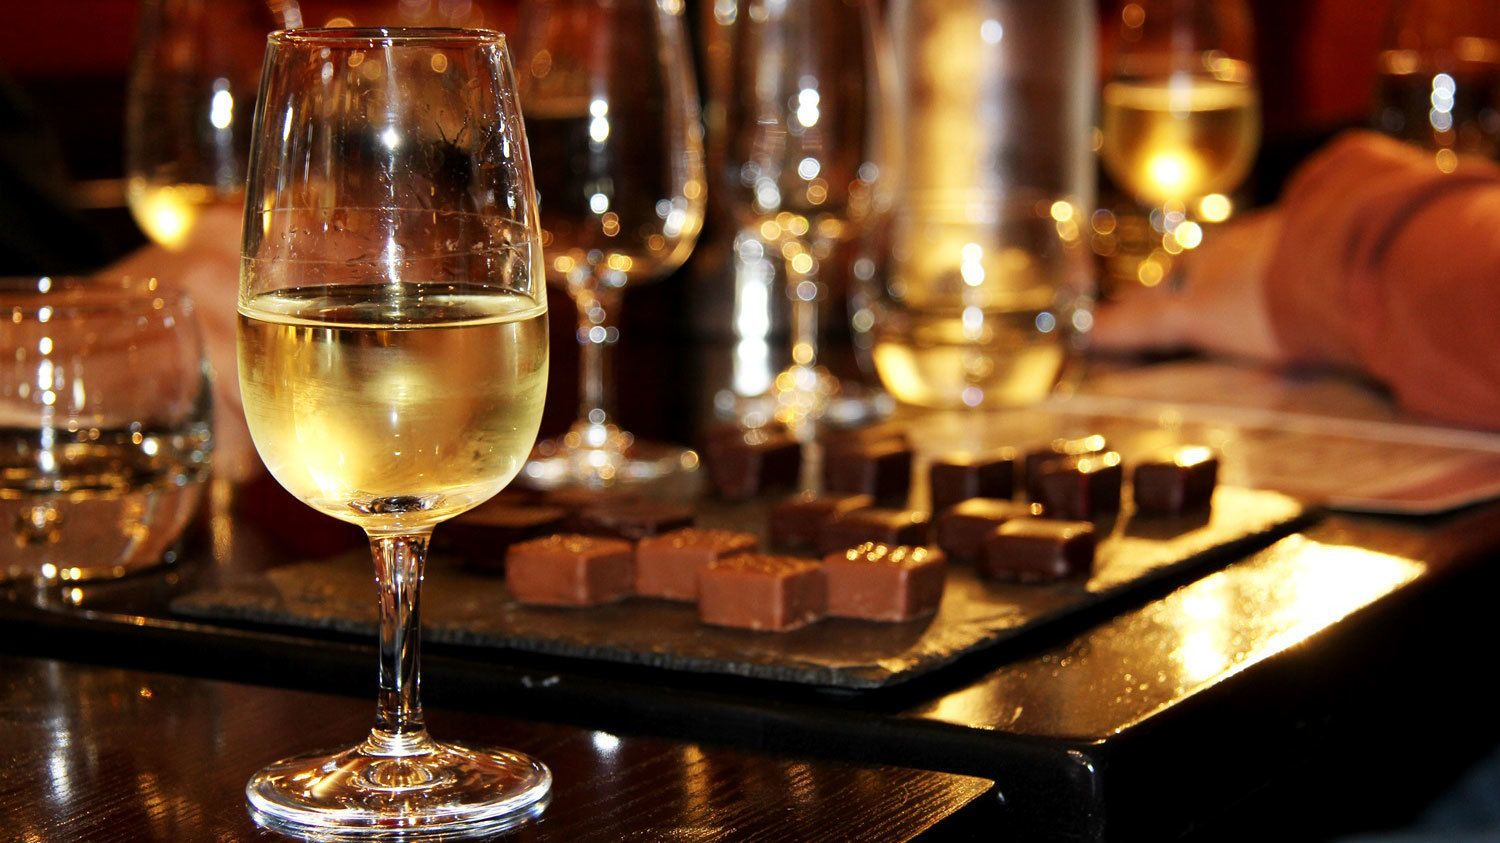 Chocolate-and-Wine-tasting-tour-in-France.jpg